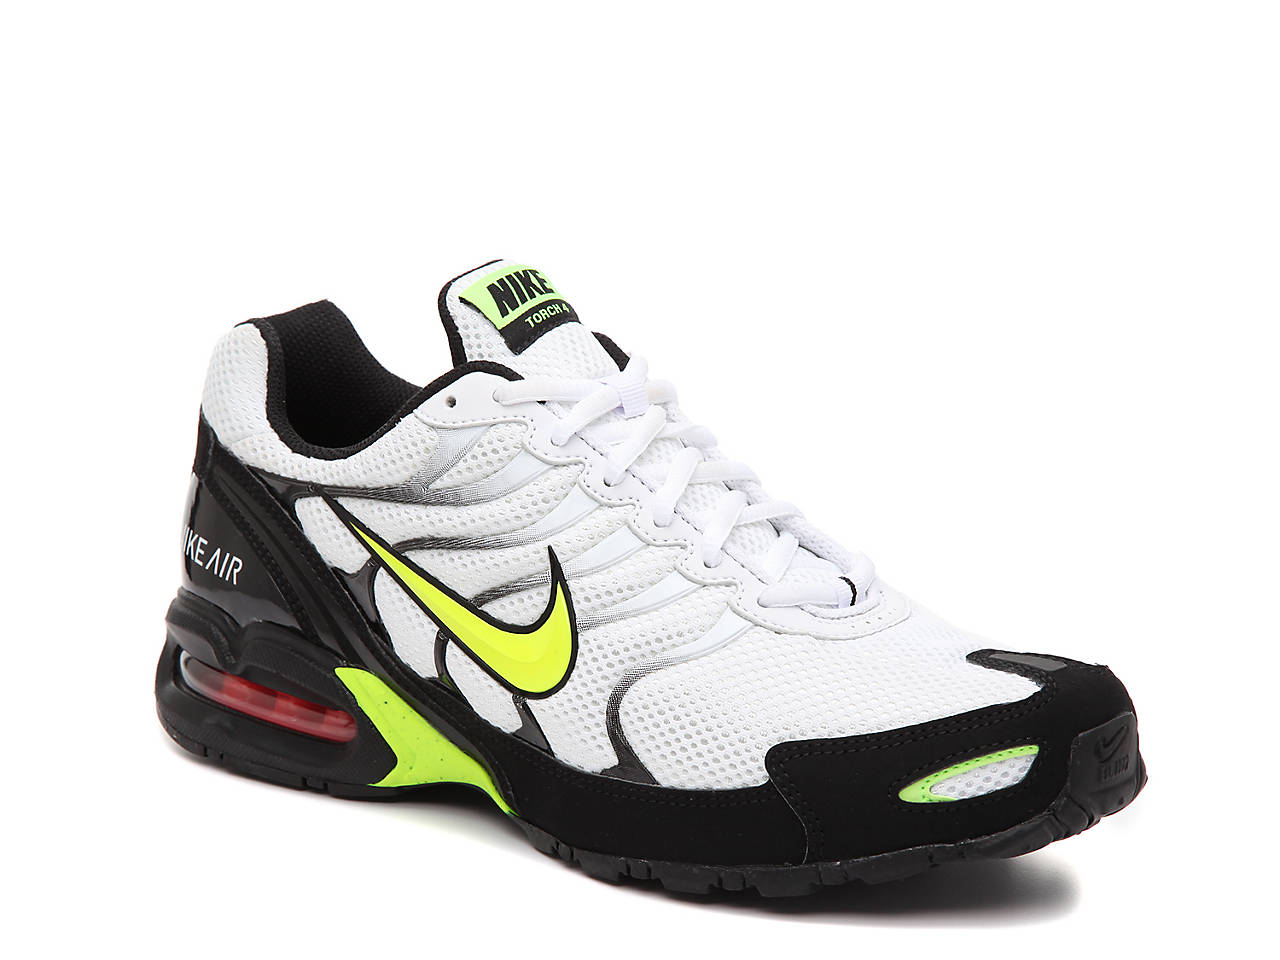 wholesale dealer bbd7d eb706 Air Max Torch 4 Sneaker - Men's